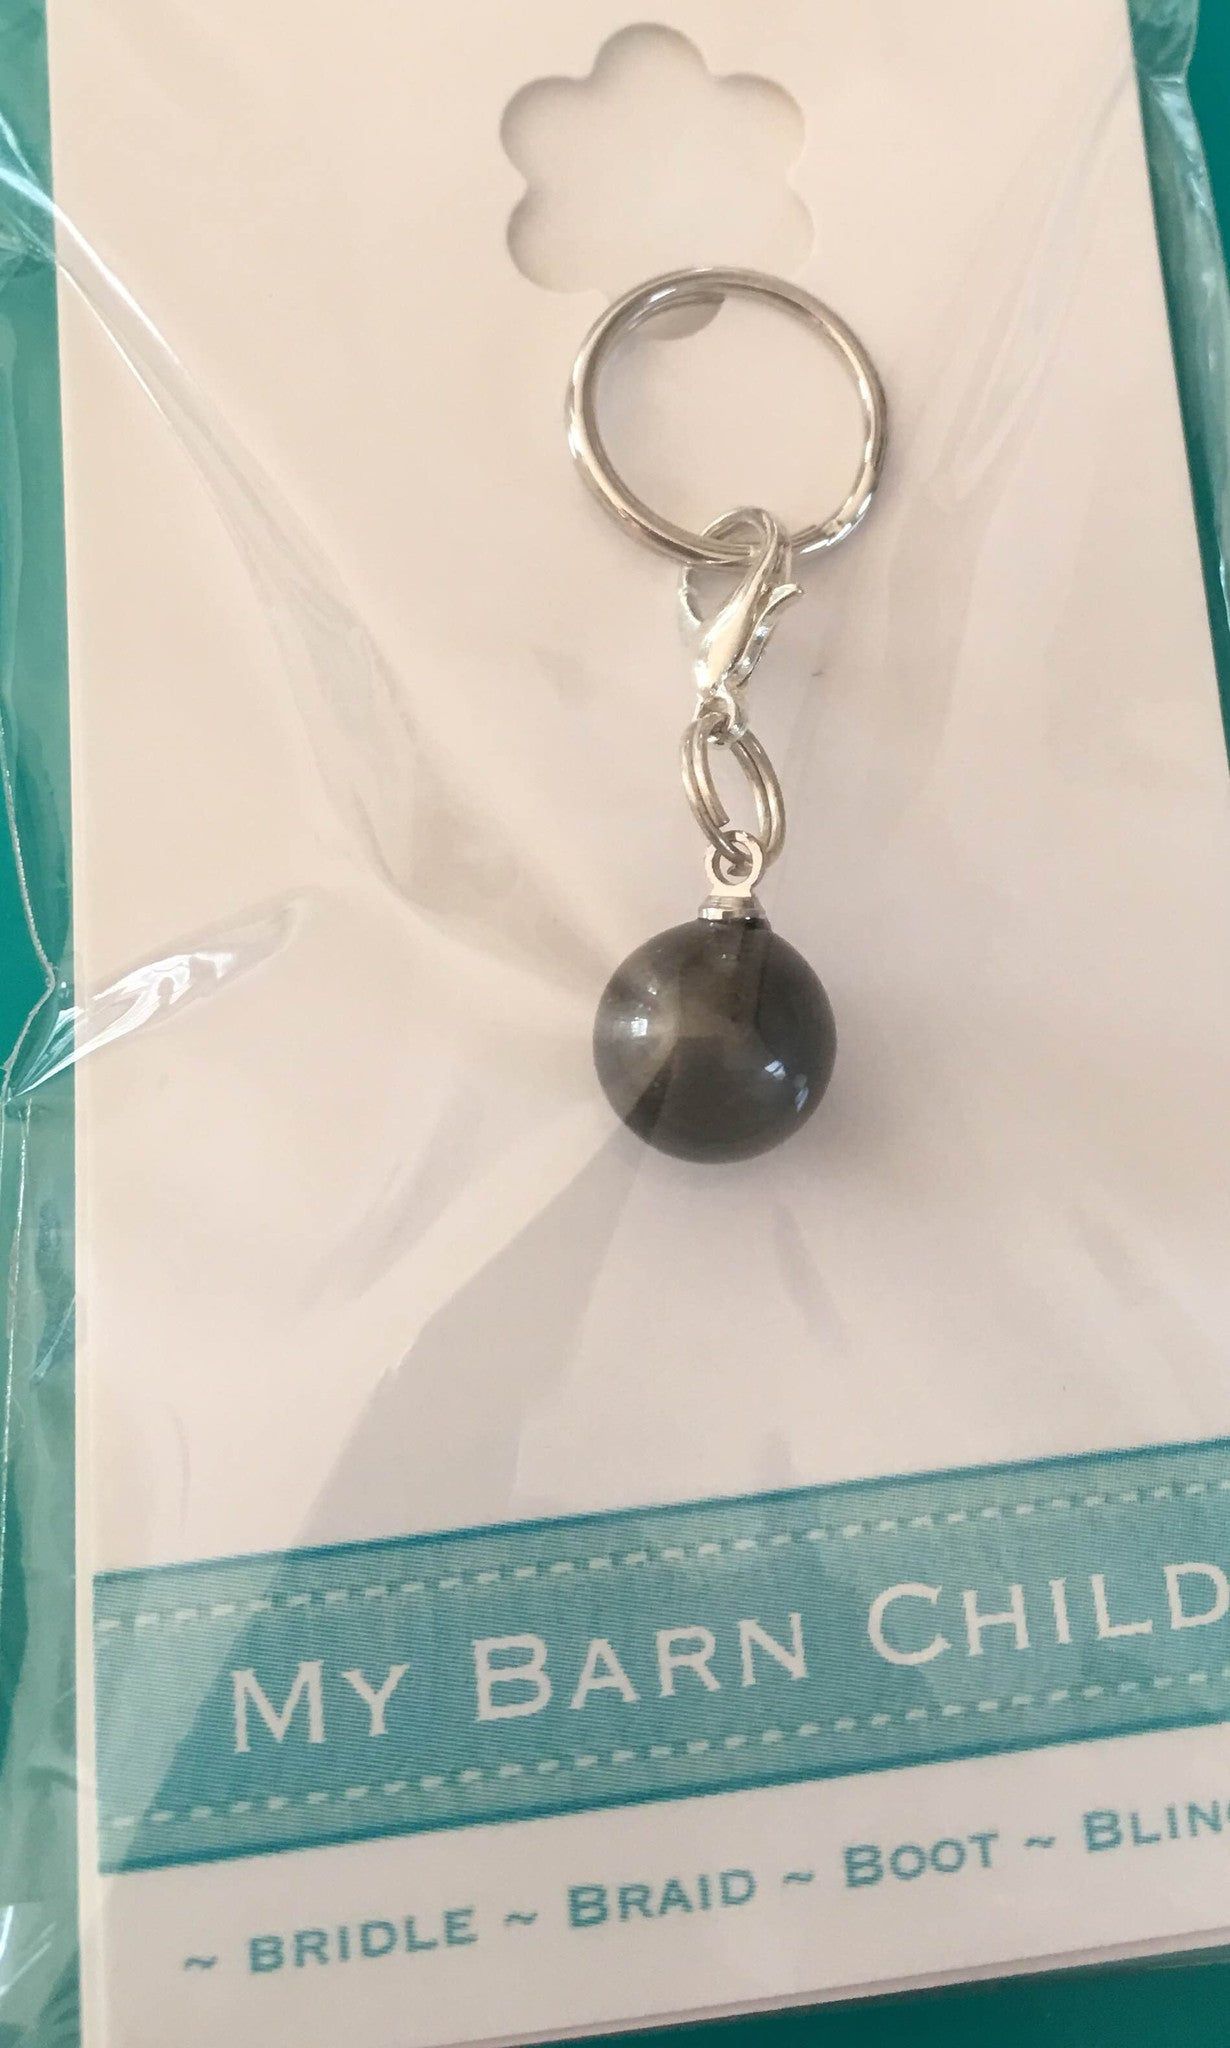 Black Pearl Charm from My Barn Child